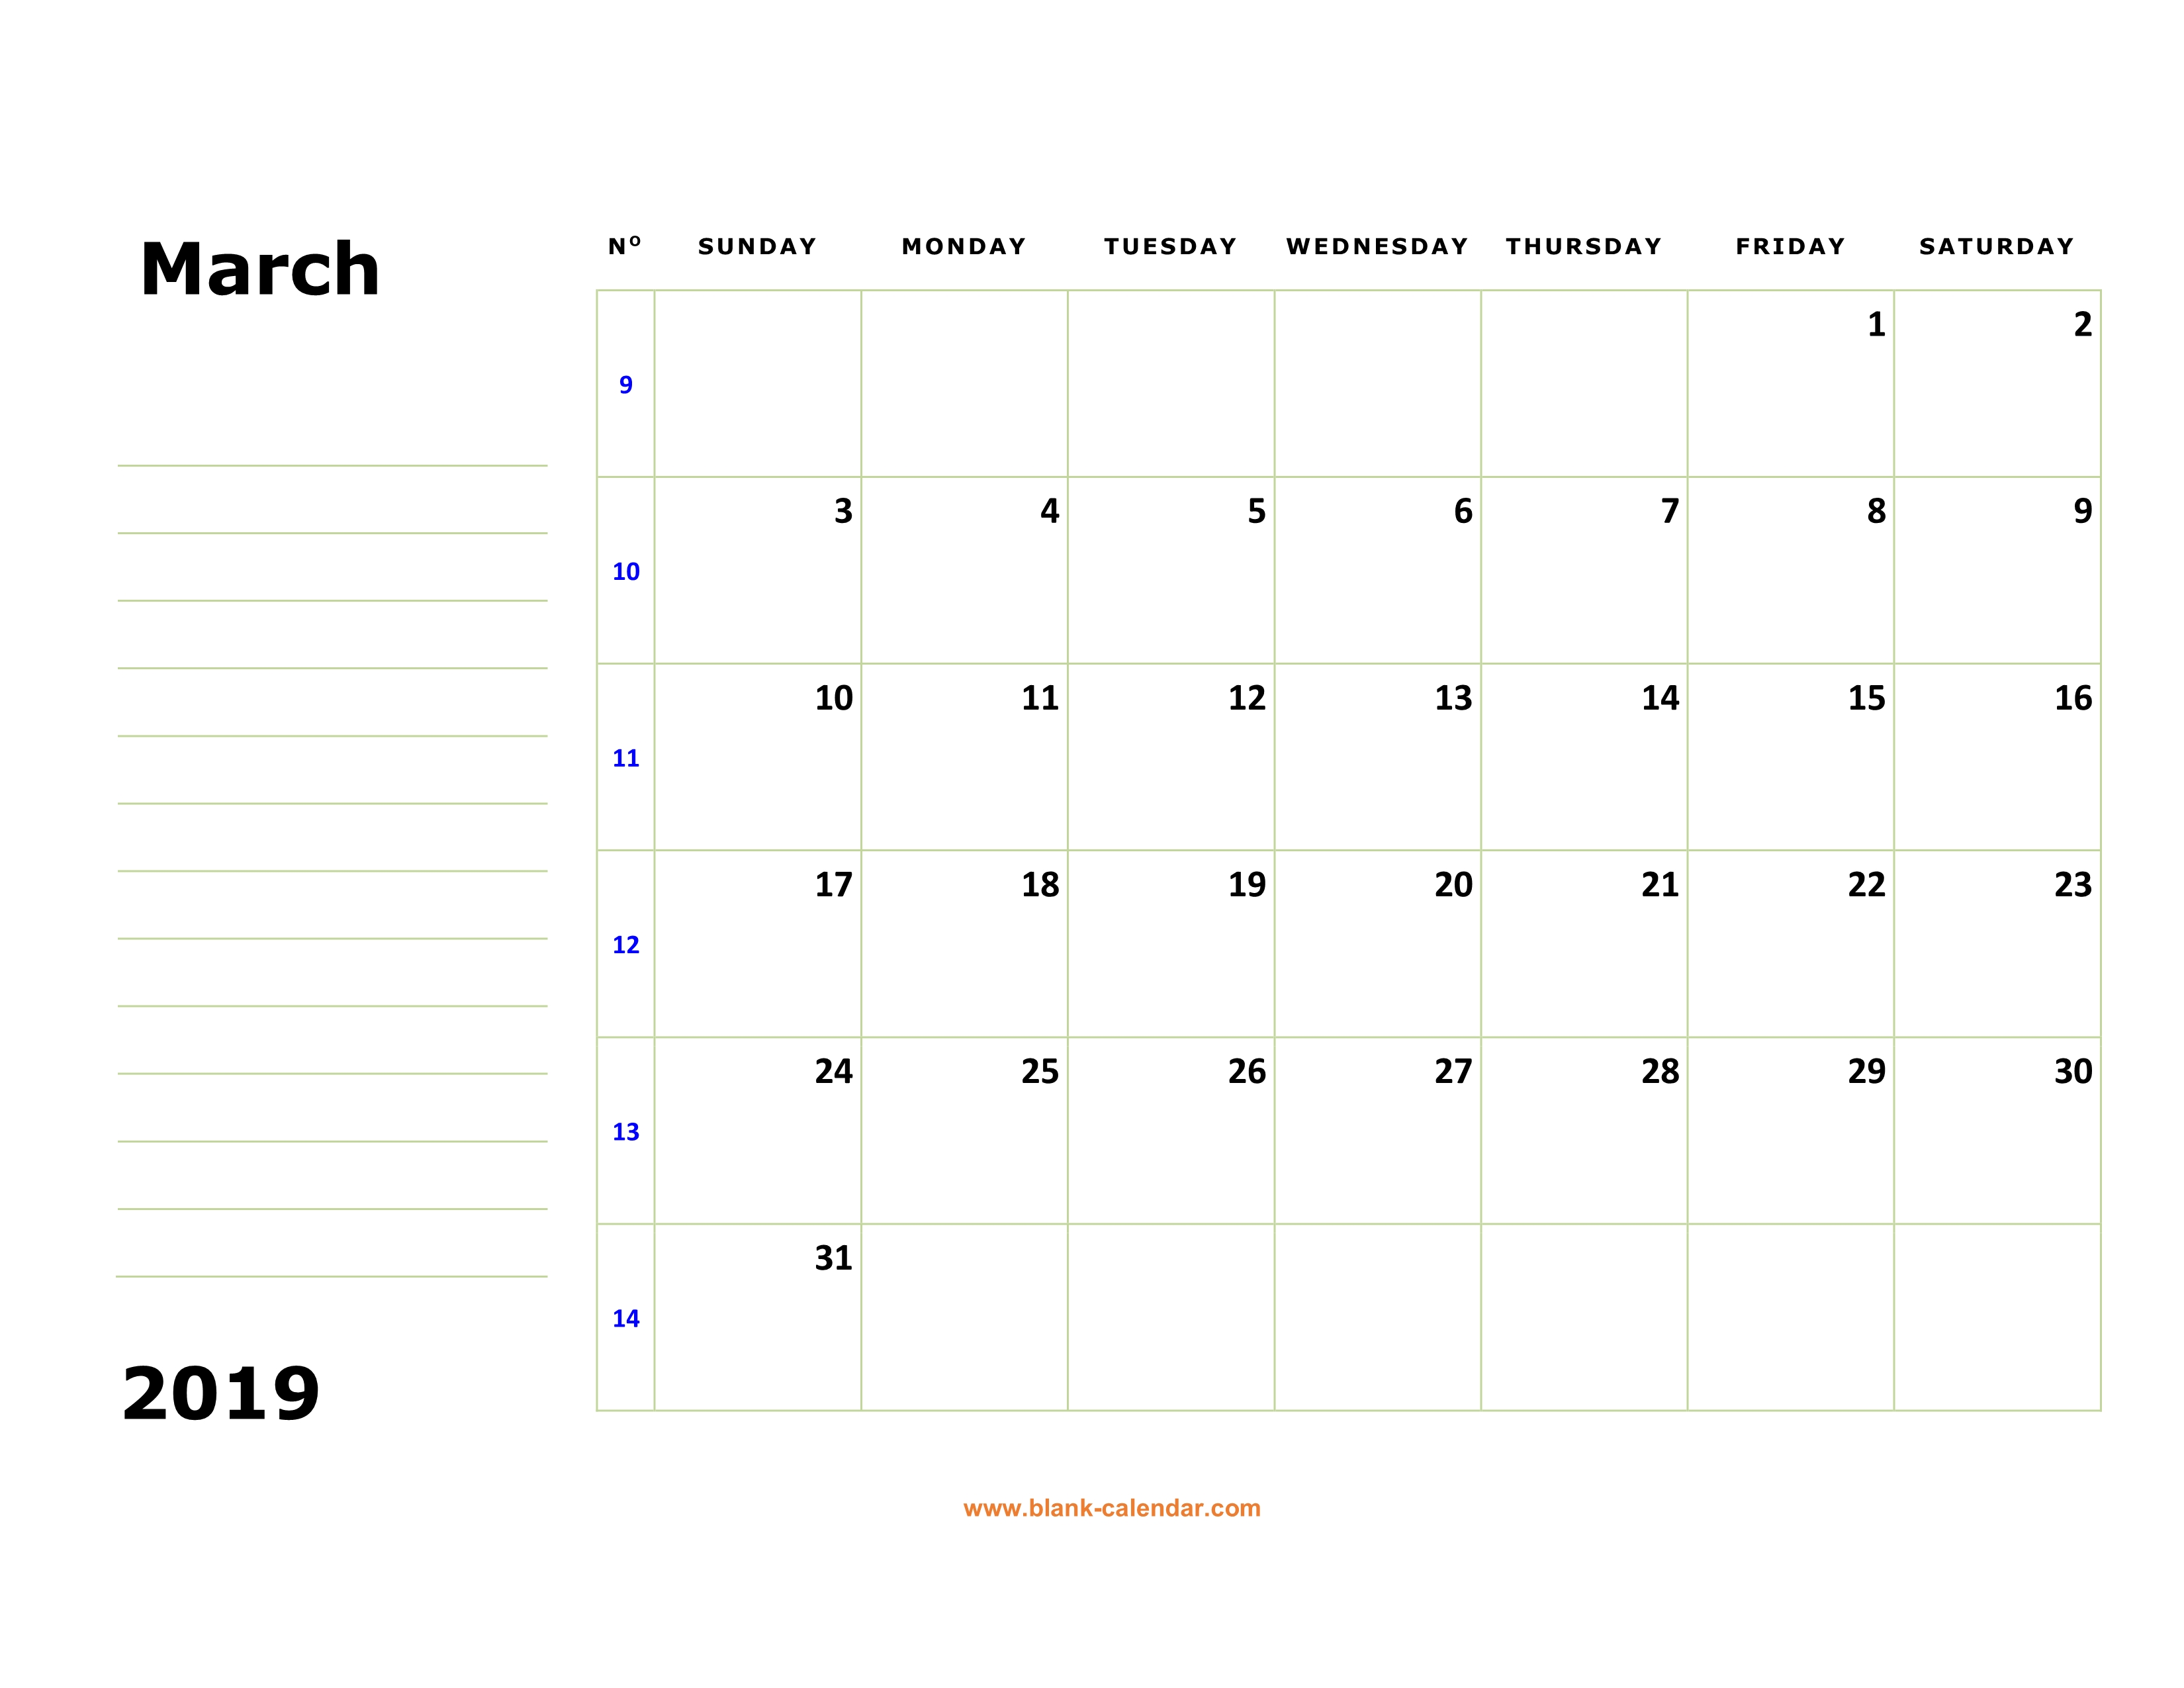 image regarding Free Printable March Calendar known as Cost-free Obtain Printable March 2019 Calendar, significant box